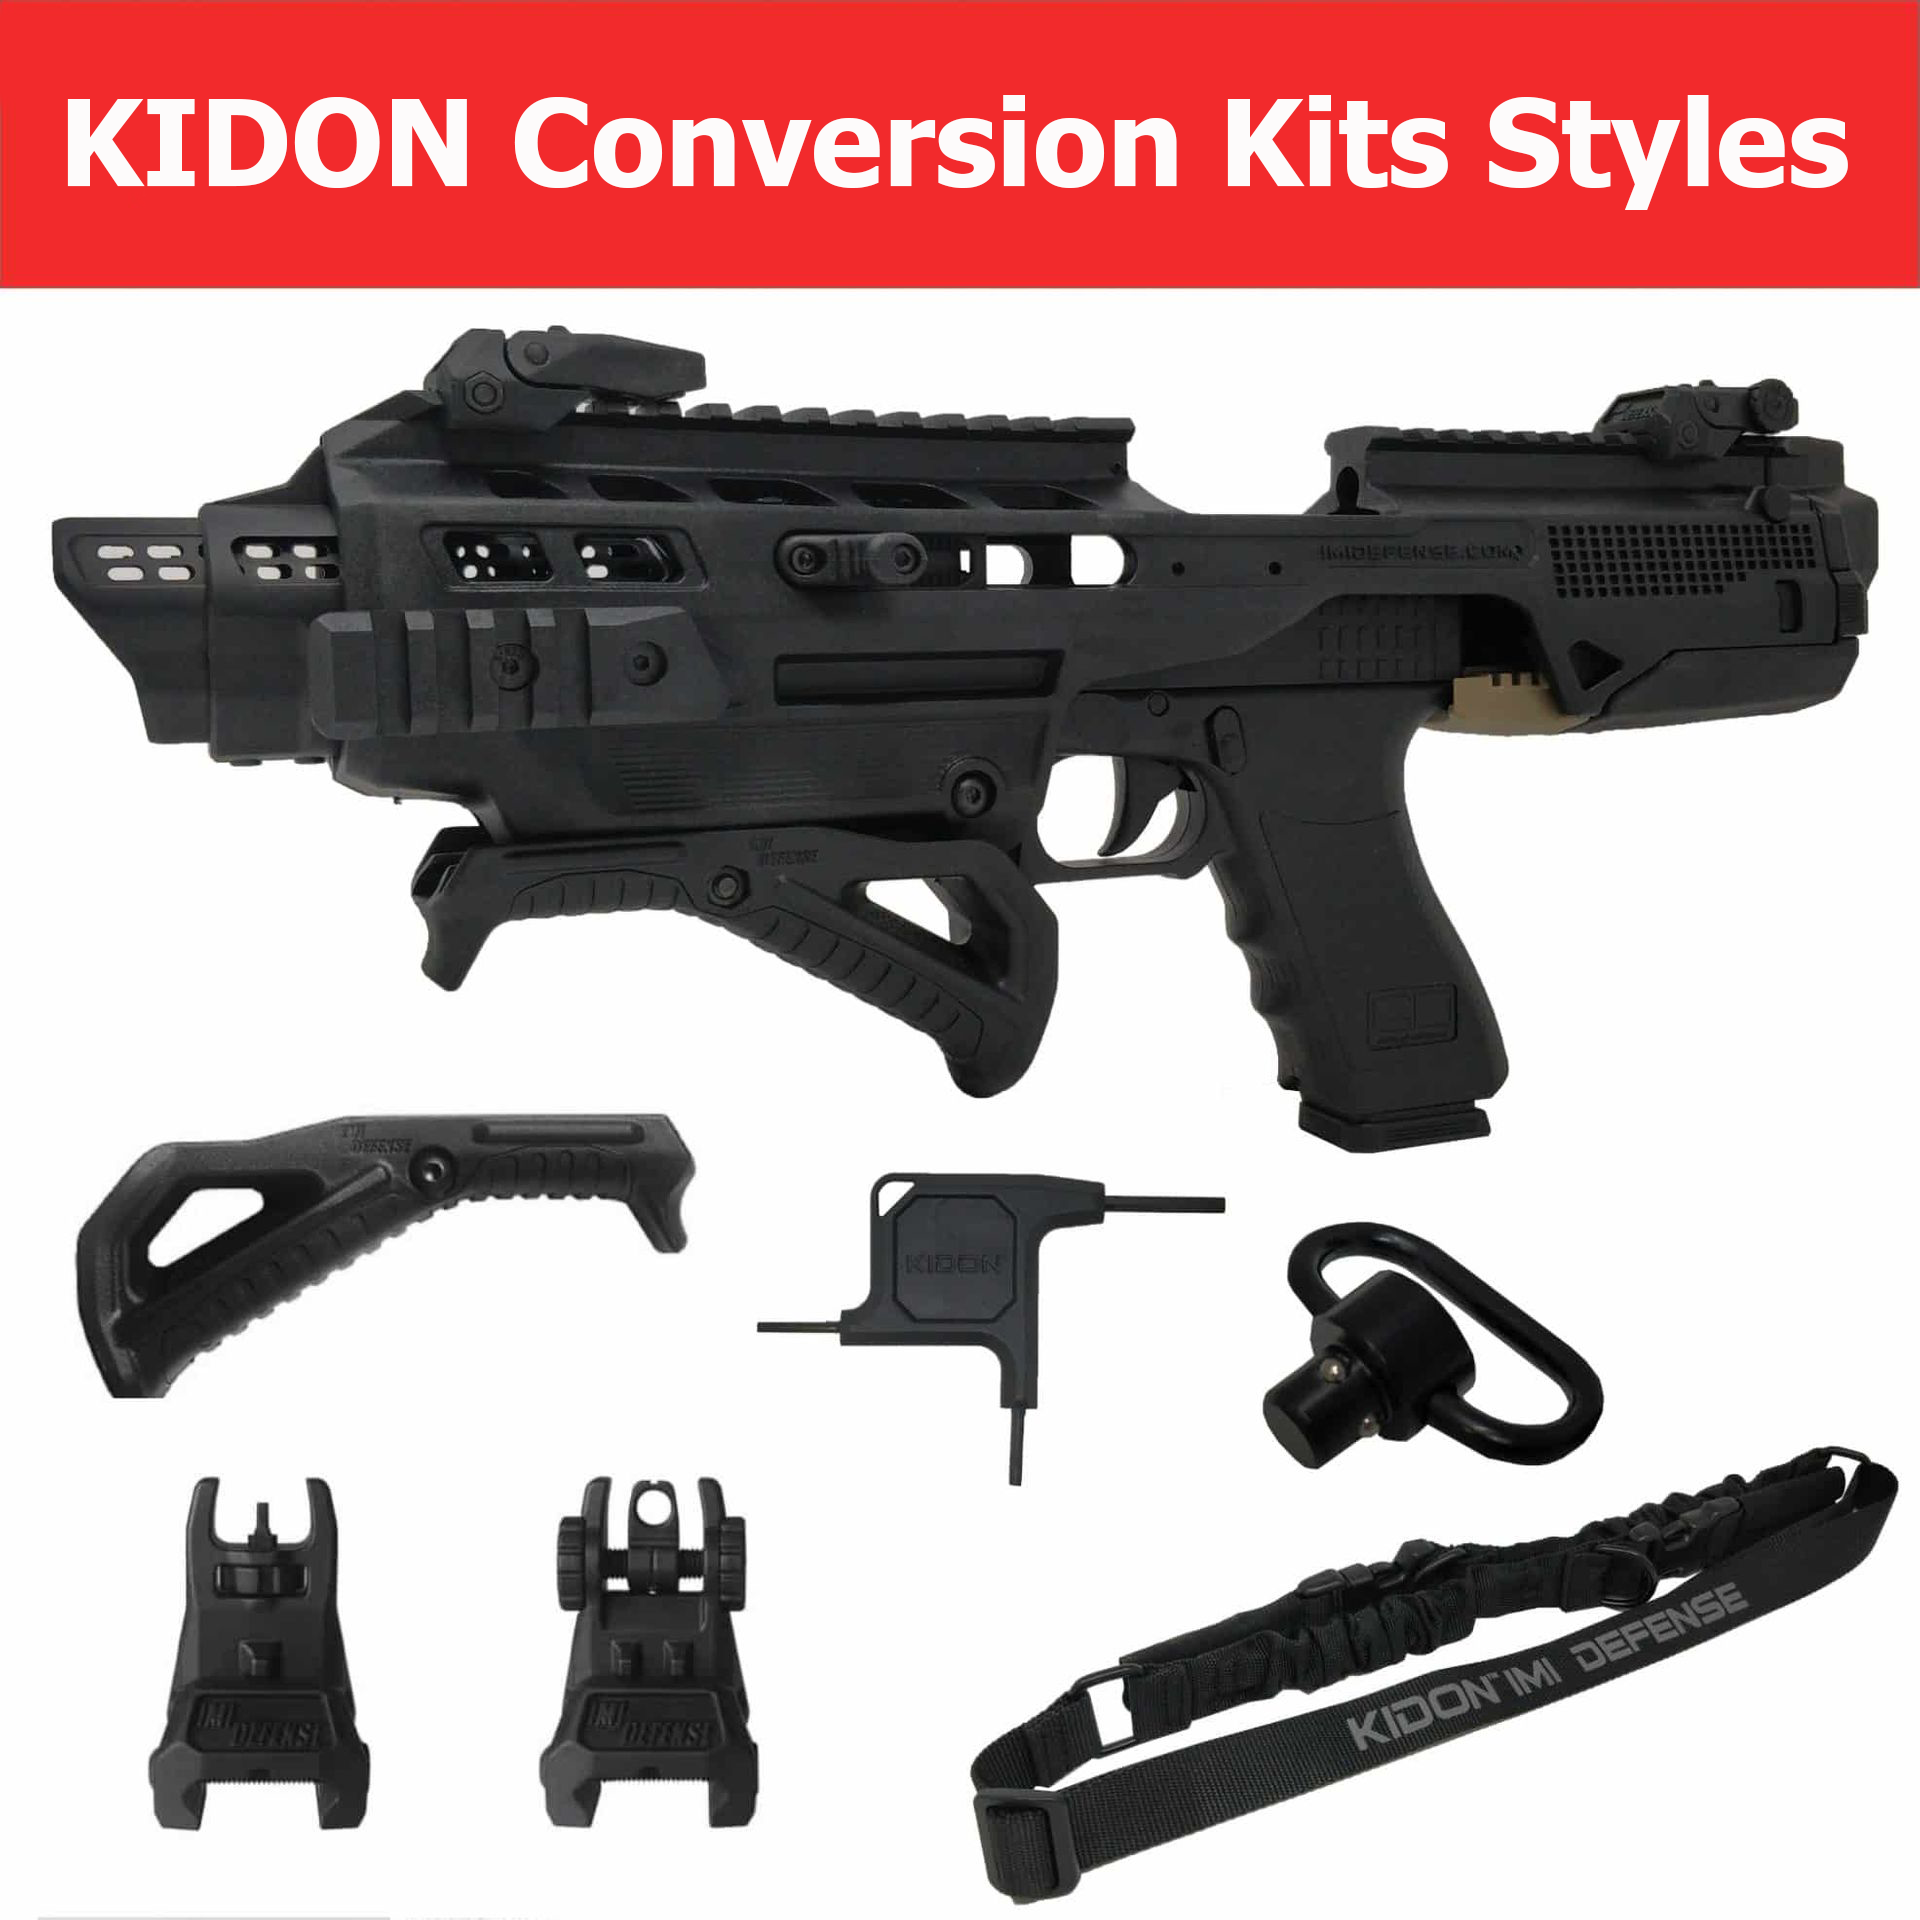 Kidon Conversion Kits Styles